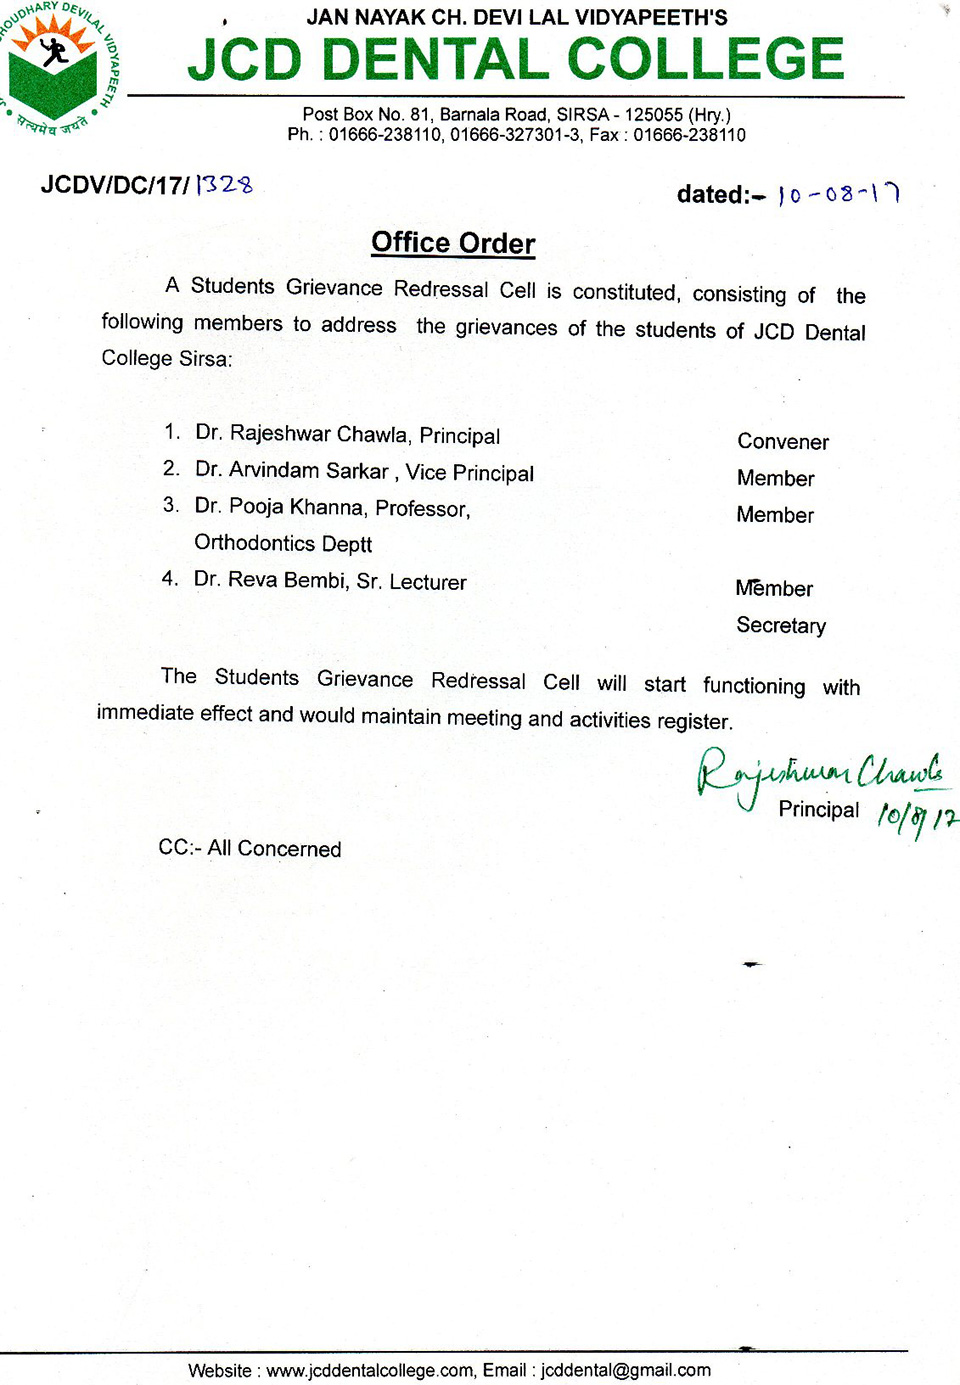 students-grievance-redressal-cell